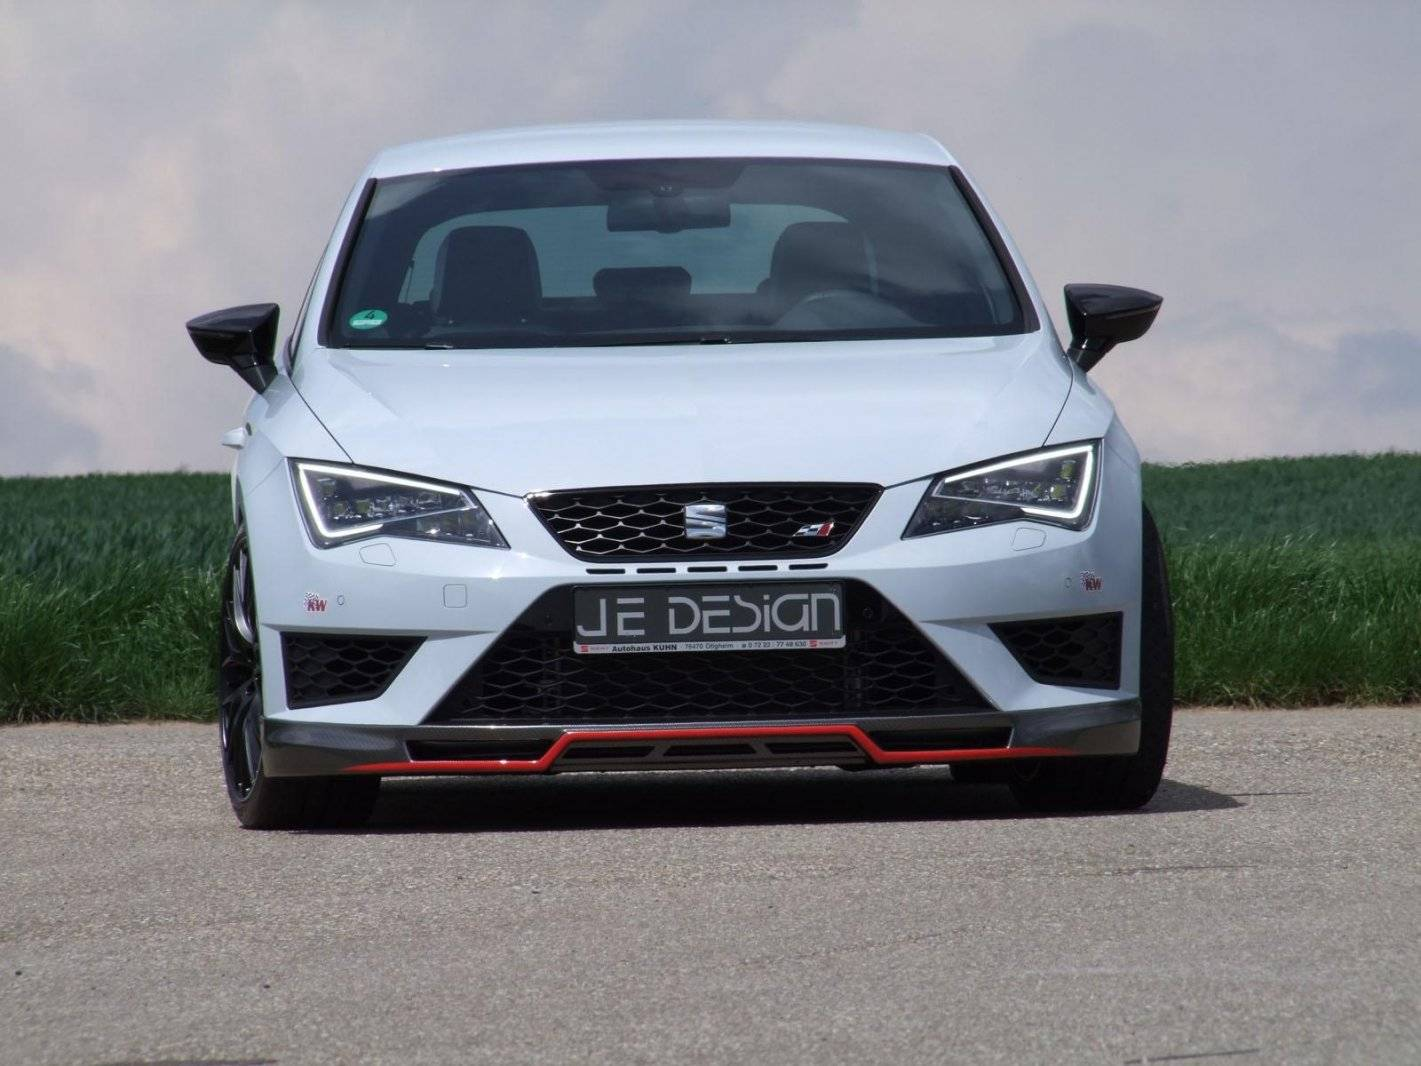 je design pepert seat leon cupra tuning styling. Black Bedroom Furniture Sets. Home Design Ideas